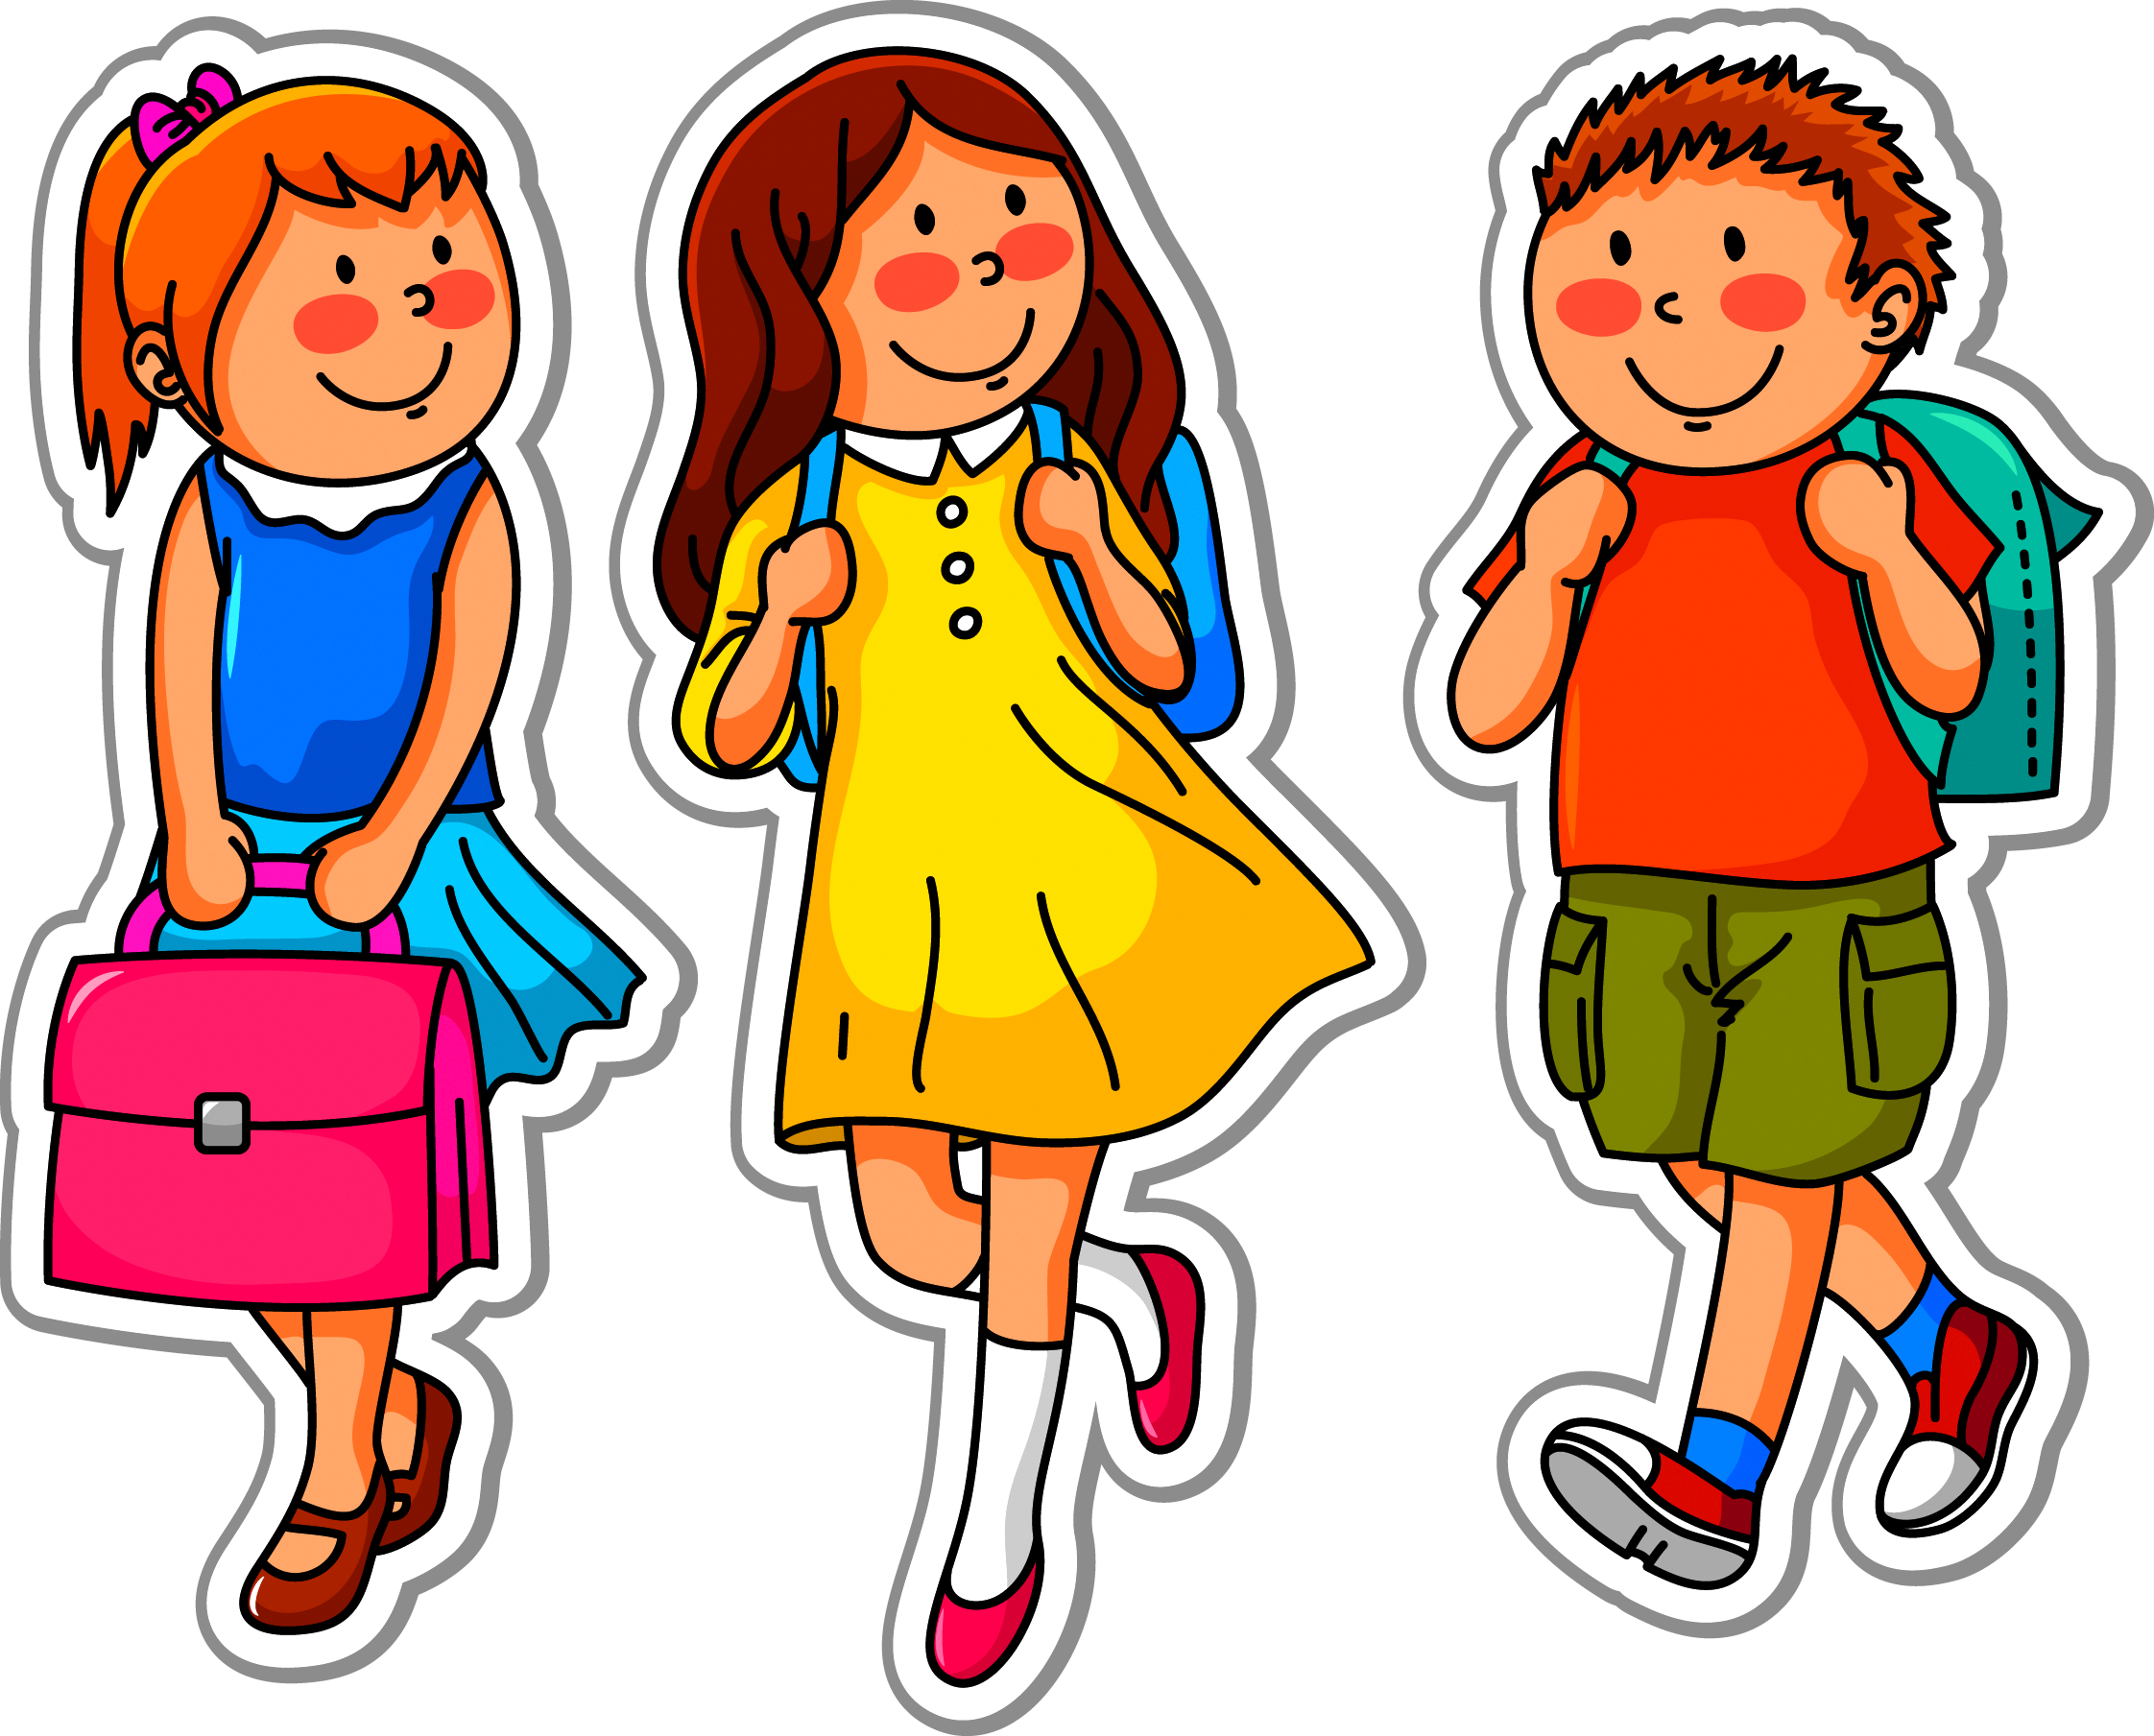 Child going to school clipart jpg library stock School Child Clip art - Children go to school endorsement package ... jpg library stock